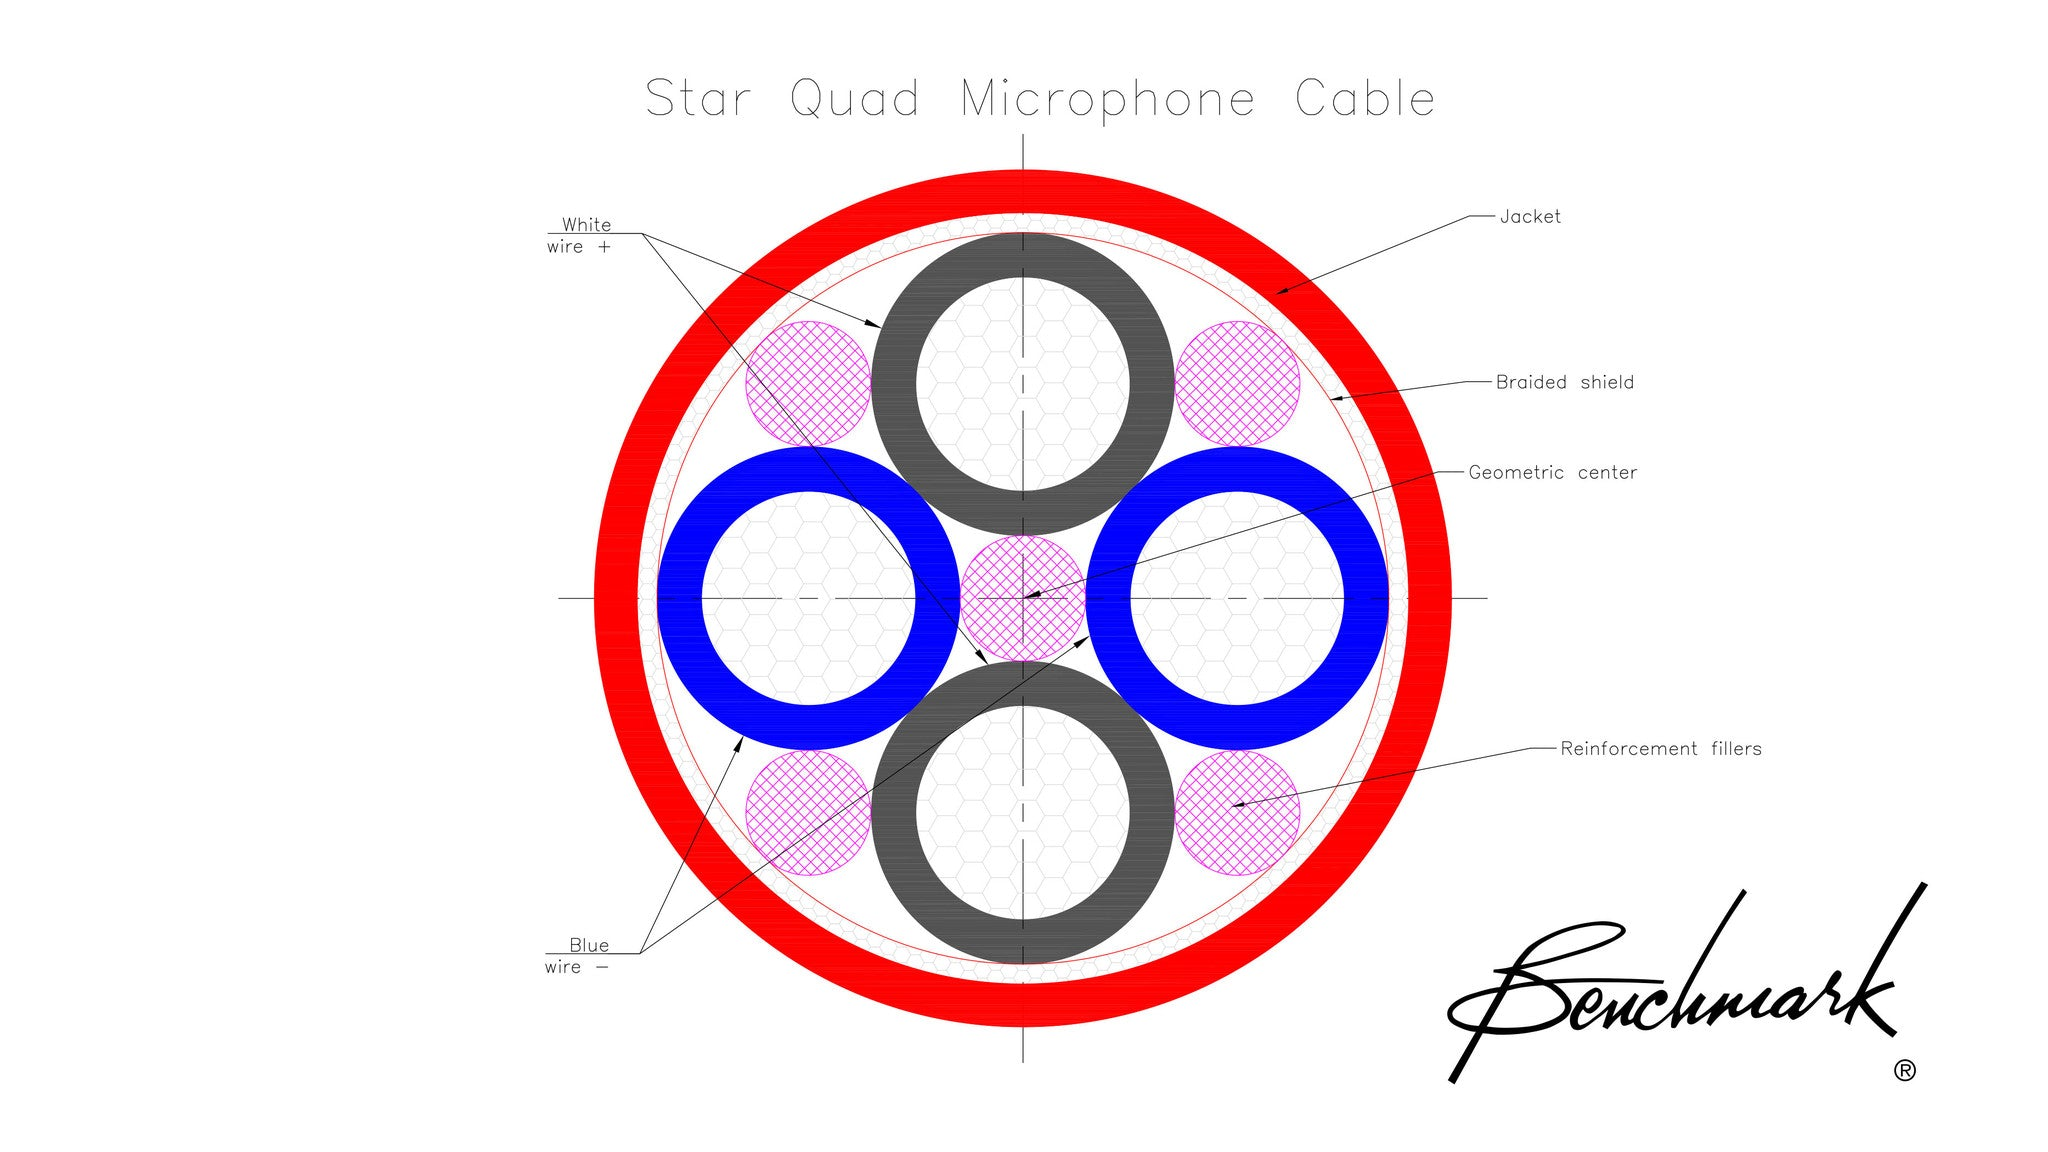 Balanced Star Quad Wiring Diagrams Trusted Diagram Sunl 70cc Atv Benchmark Studio Stage Starquad Xlr Cable For Analog Audio Rh Benchmarkmedia Com 24 Volt Electric Scooter Peace Sports 110cc